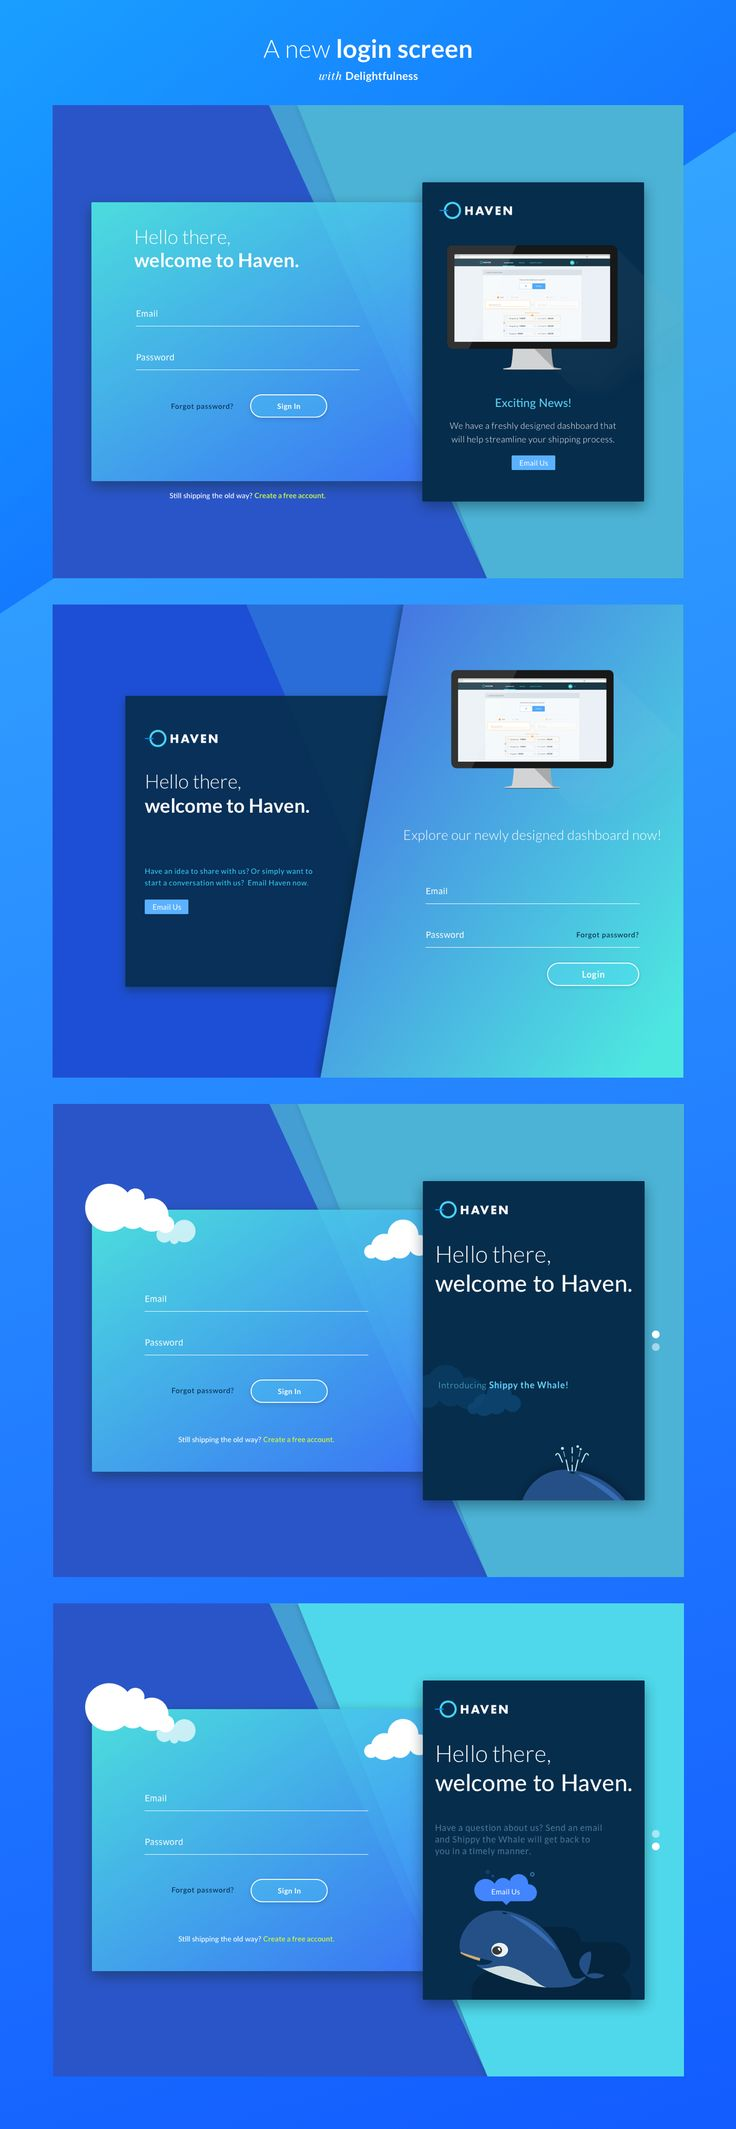 This project contains a few screens that were designed to increase new user acquisitions by offering them an experience that breaks away from the traditional enterprise visual aesthetics. Enjoy!